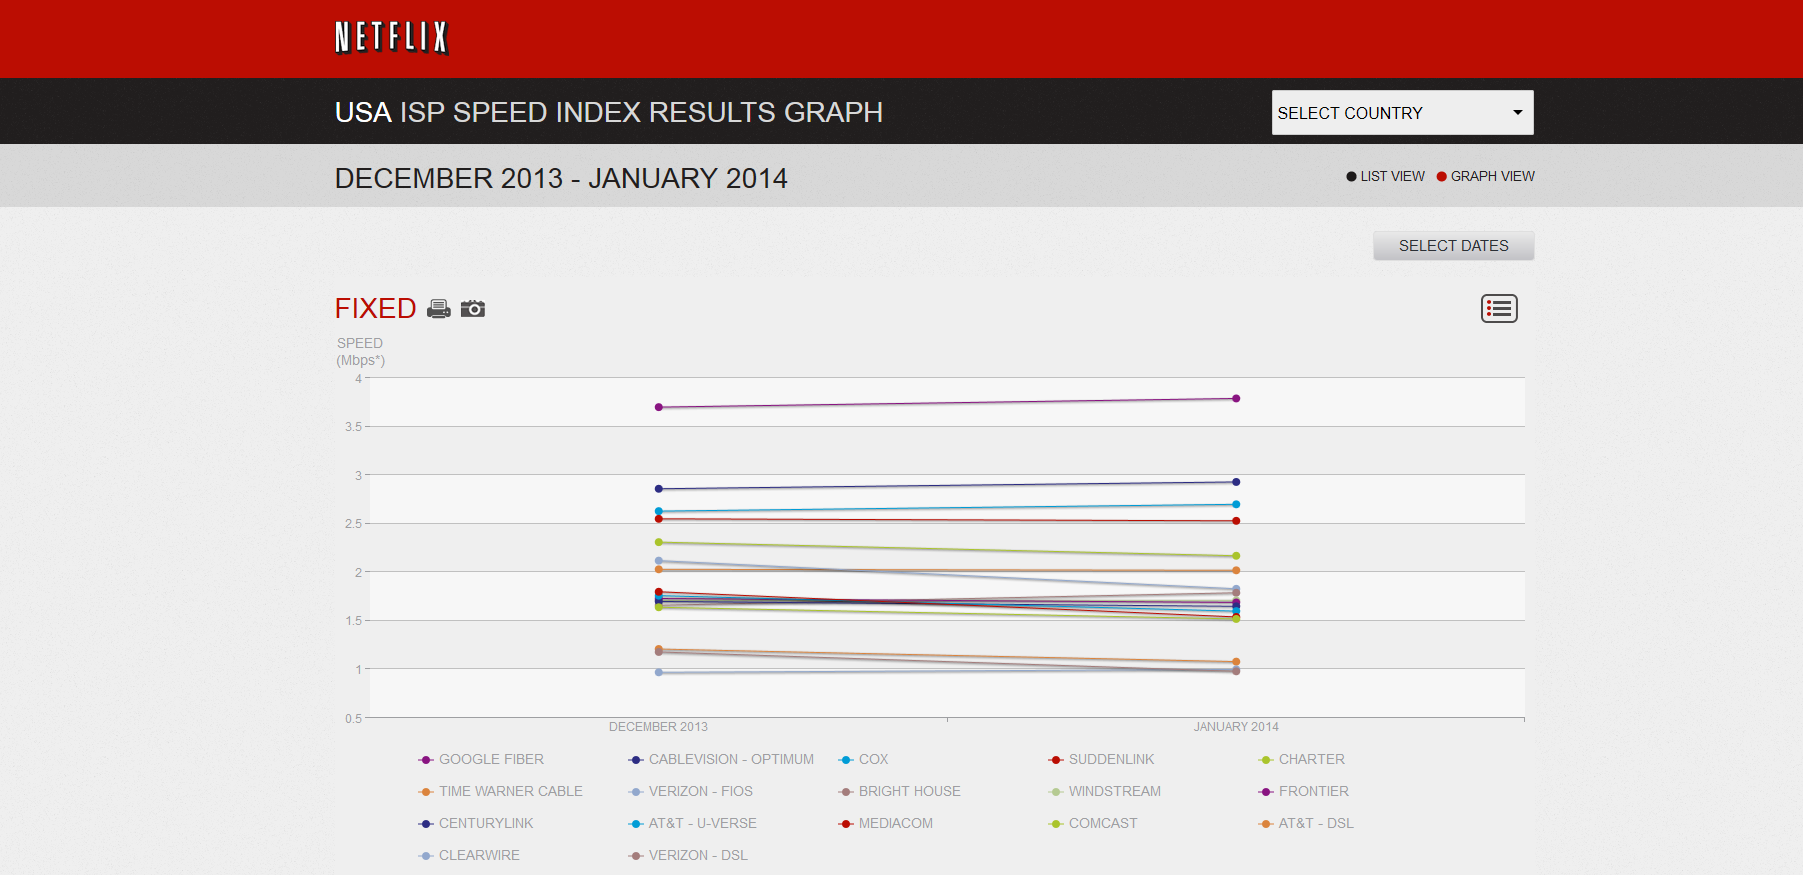 Netflix USA ISP speed index results.PNG